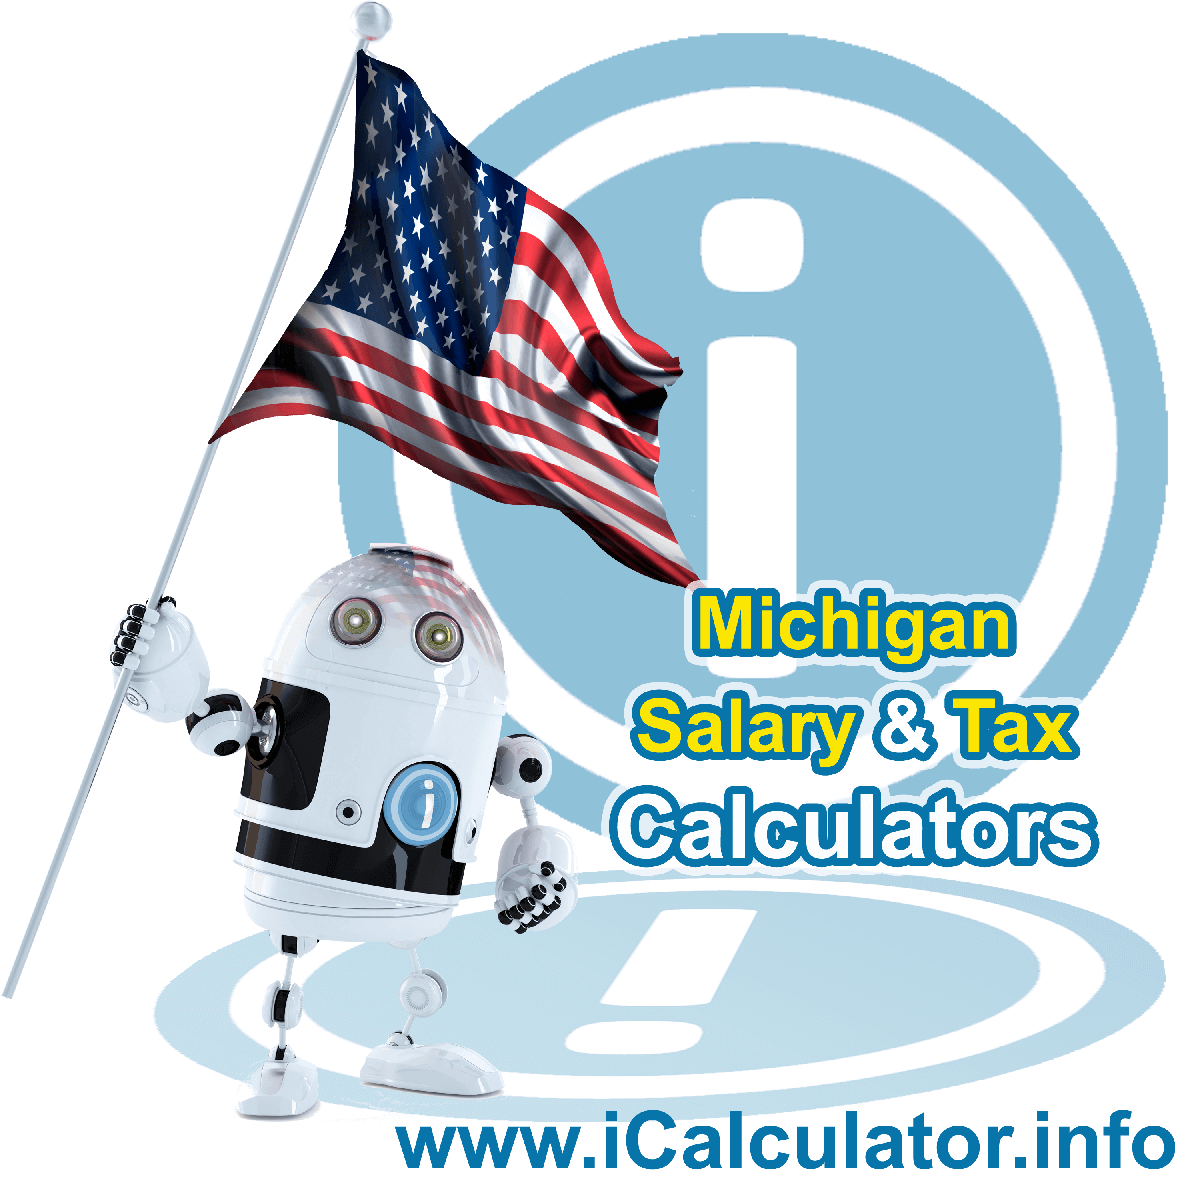 Michigan Salary Calculator 2020 | iCalculator | The Michigan Salary Calculator allows you to quickly calculate your salary after tax including Michigan State Tax, Federal State Tax, Medicare Deductions, Social Security, Capital Gains and other income tax and salary deductions complete with supporting Michigan state tax tables